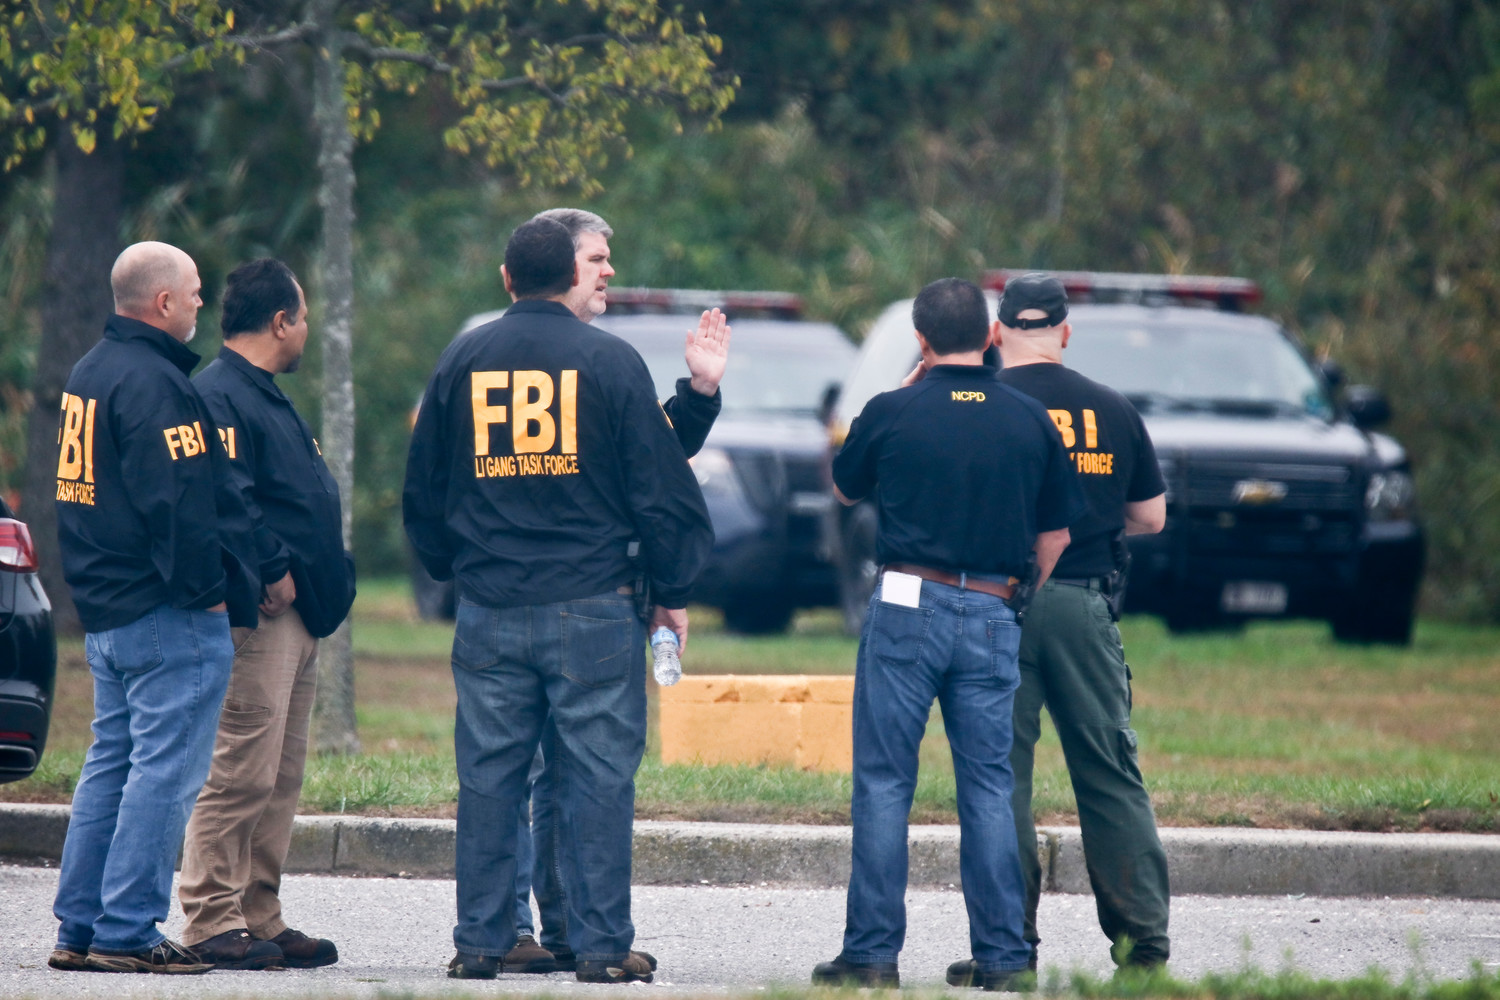 FBI agents focused their search for human remains on a wooded area in the center of Cow Meadow Park in Freeport.